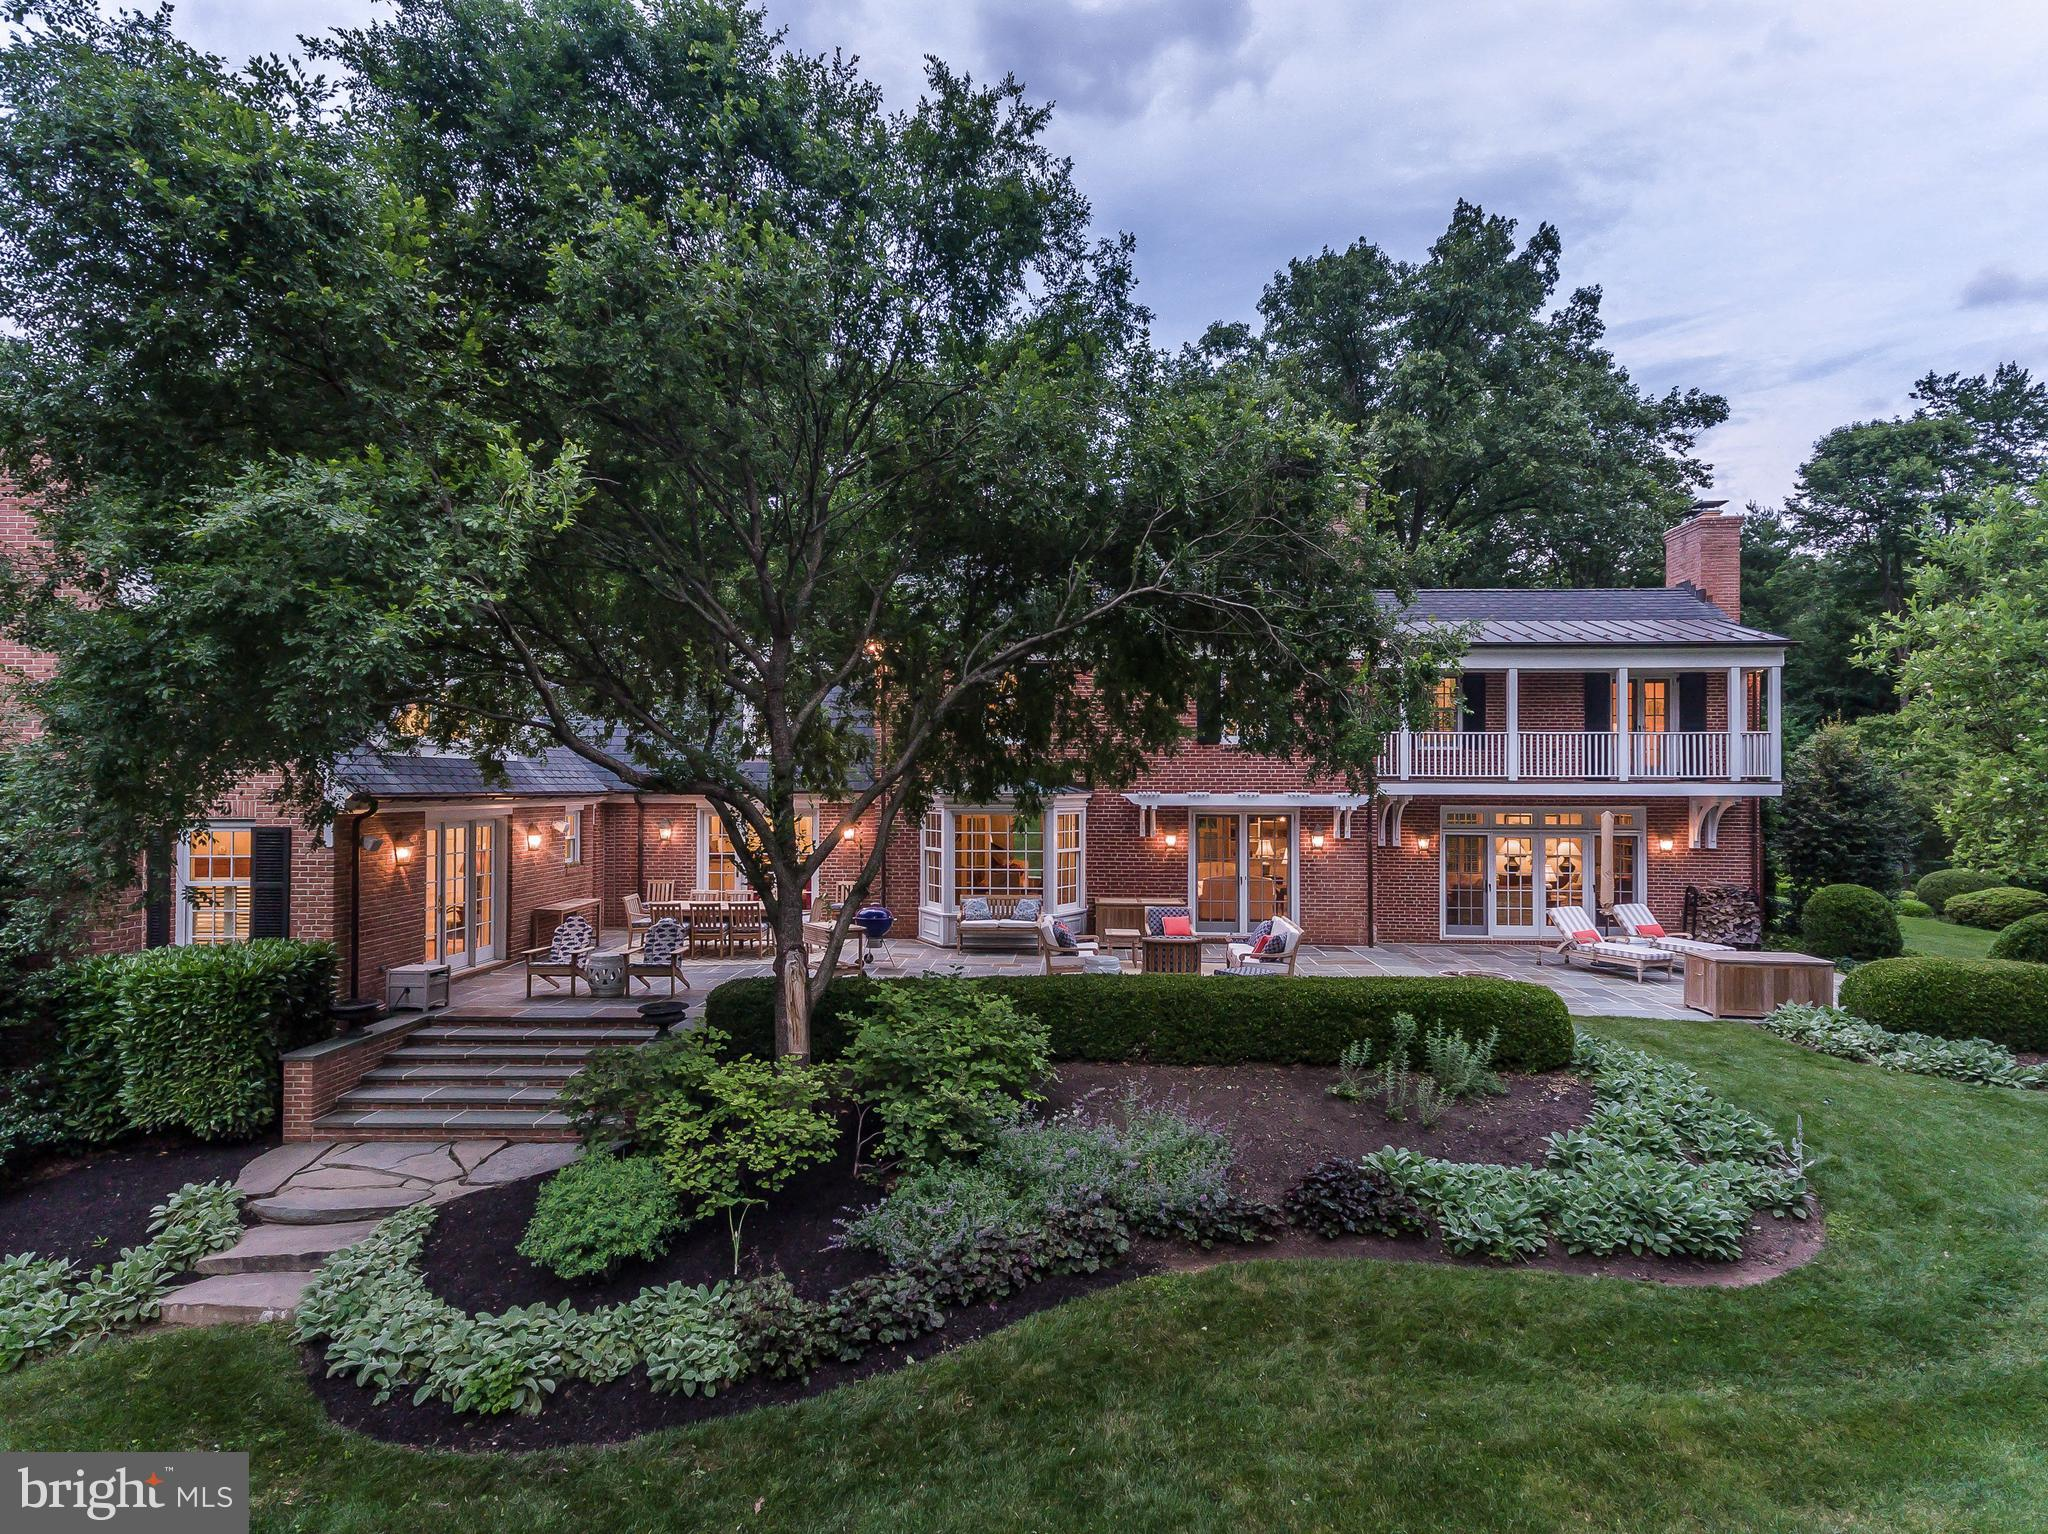 3132 W GOLF COURSE ROAD, OWINGS MILLS, MD 21117